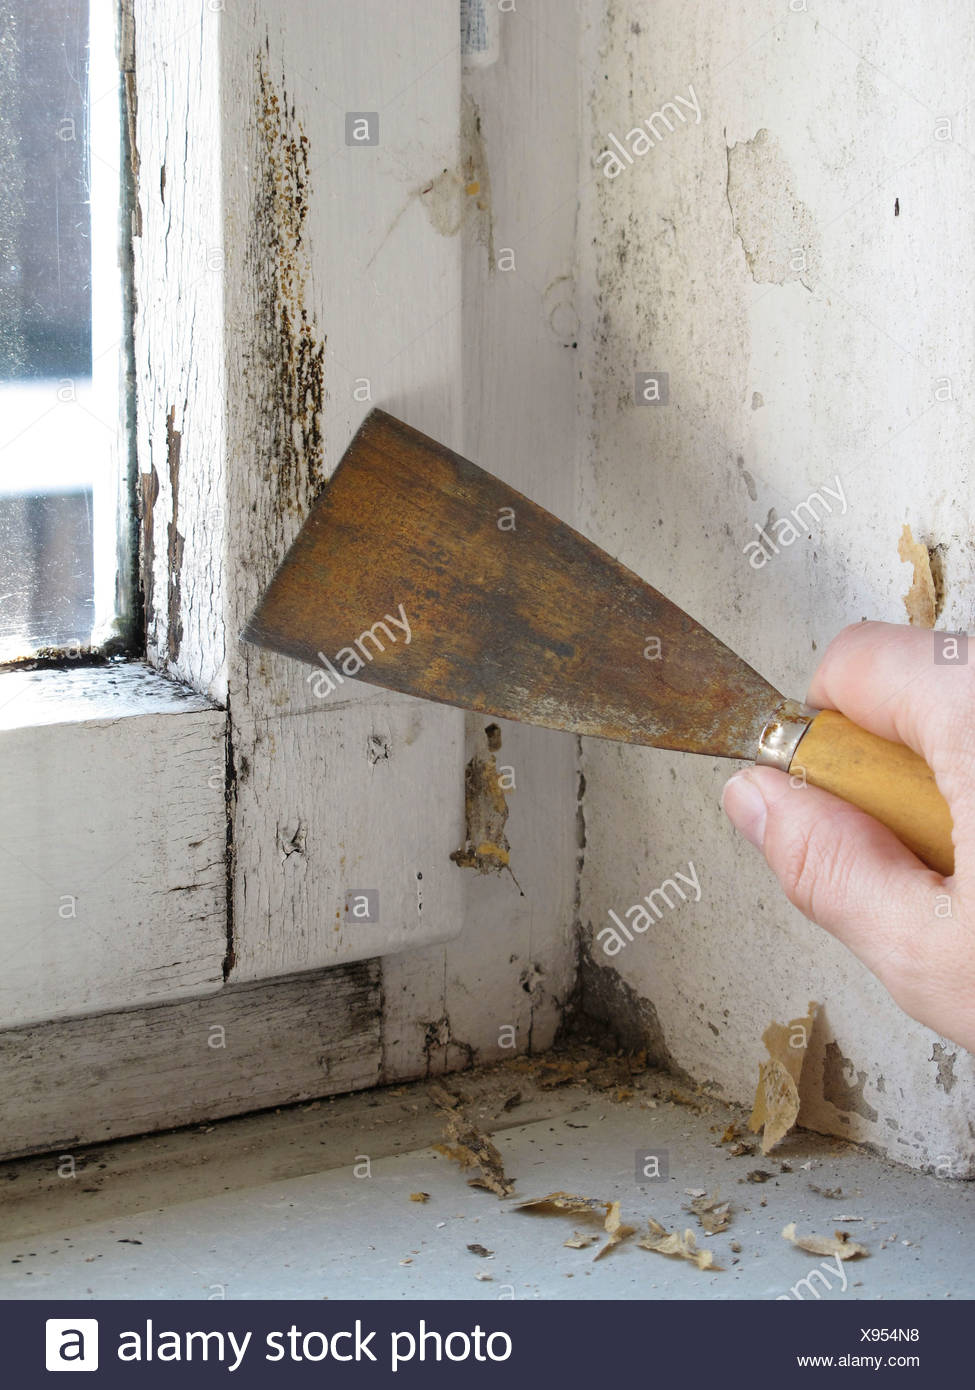 Mould on a window being removed with a spatula - Stock Image